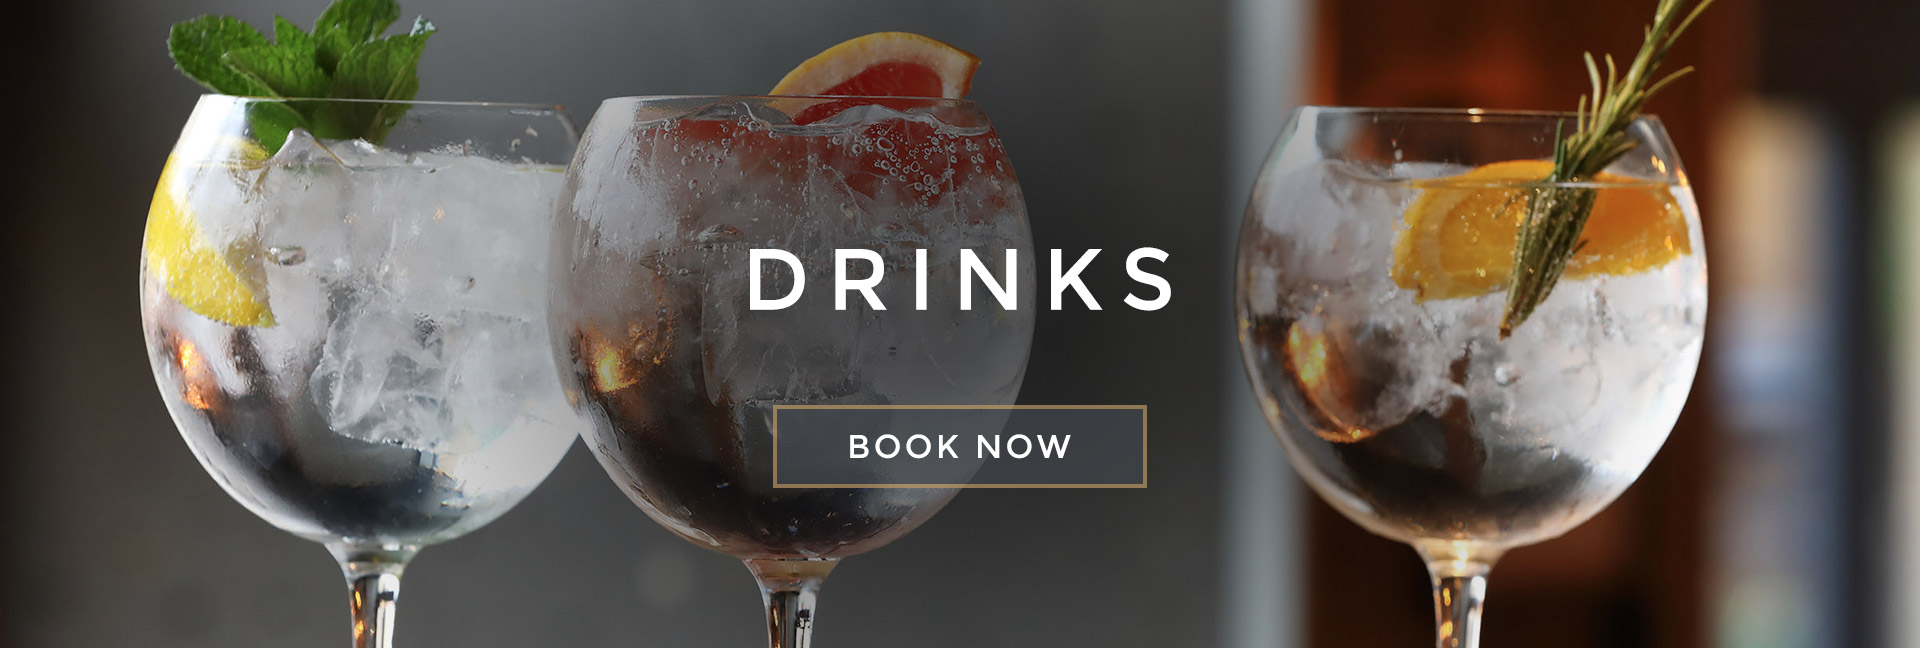 Drinks at All Bar One Guildford - Book your table